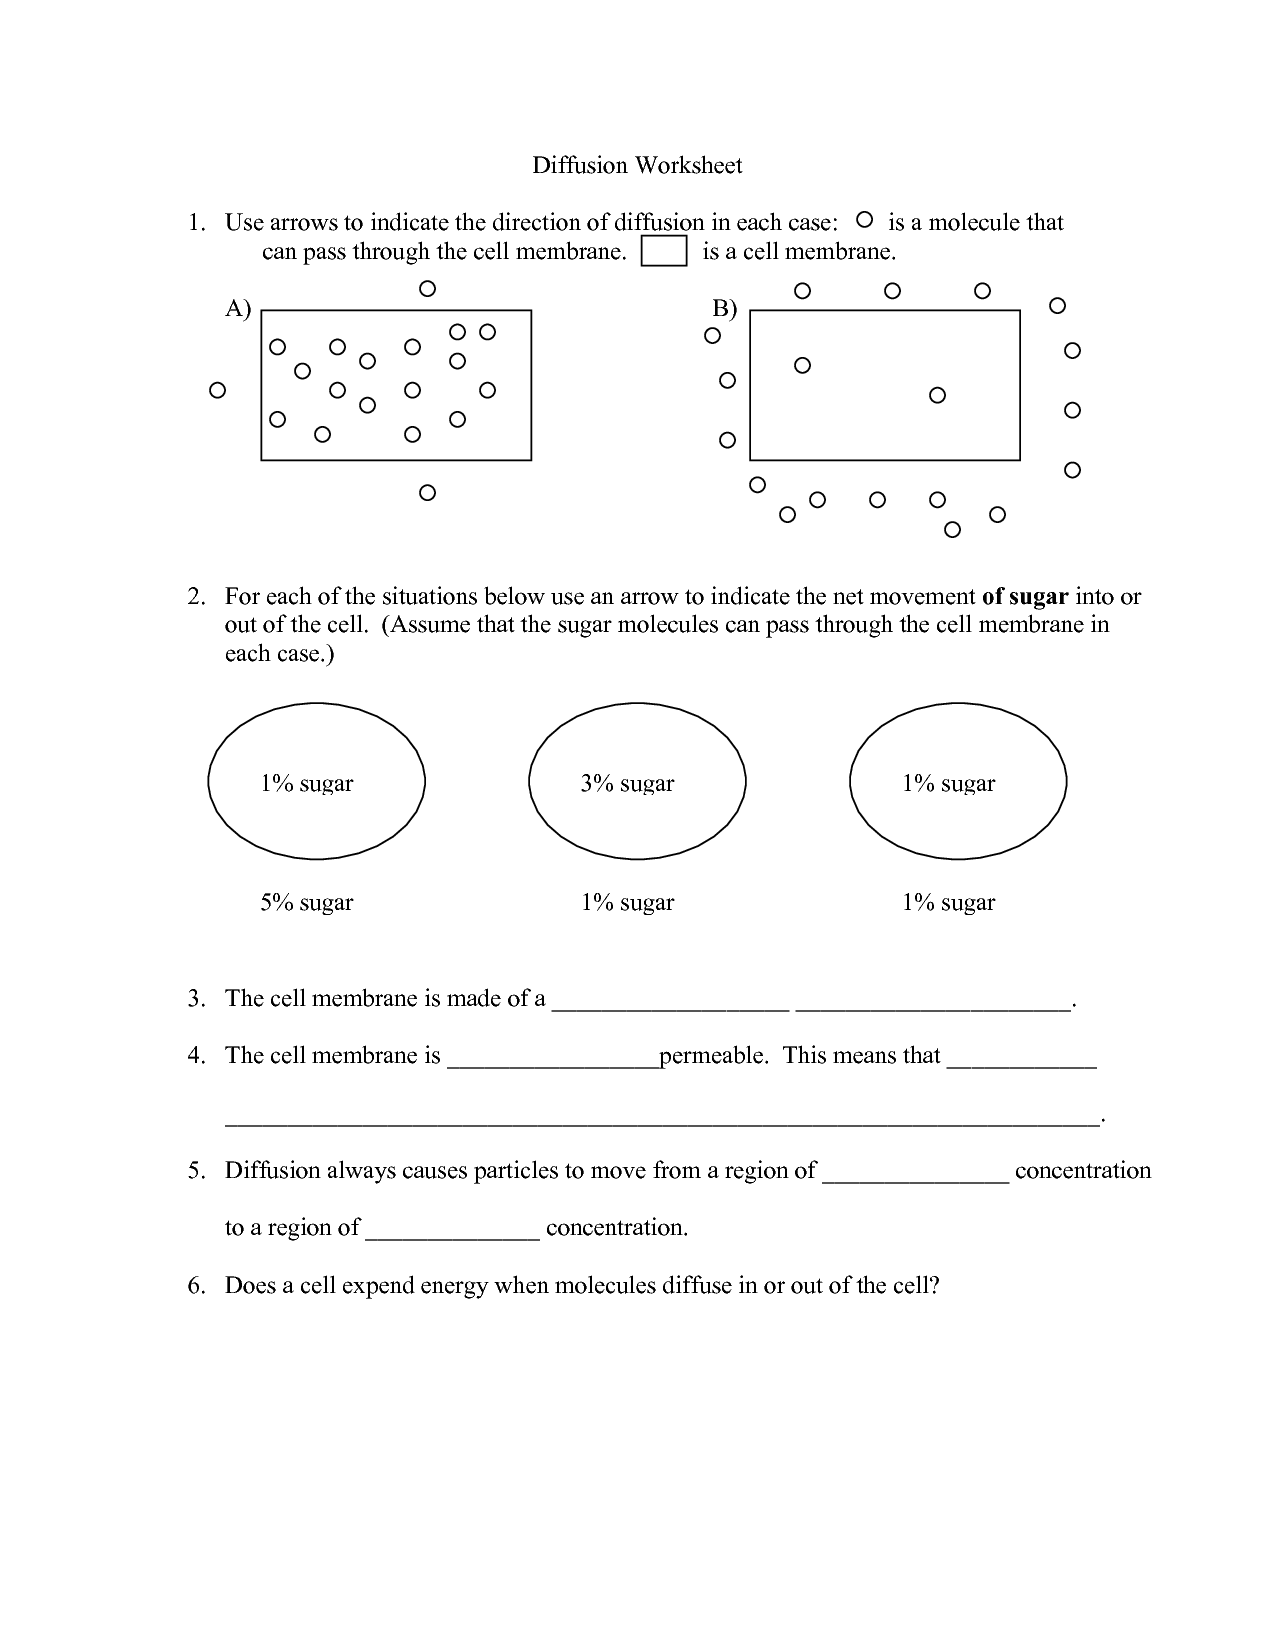 Diffusion Osmosis And Active Transport Worksheet Answers Worksheet Diffusion Worksheet Grass